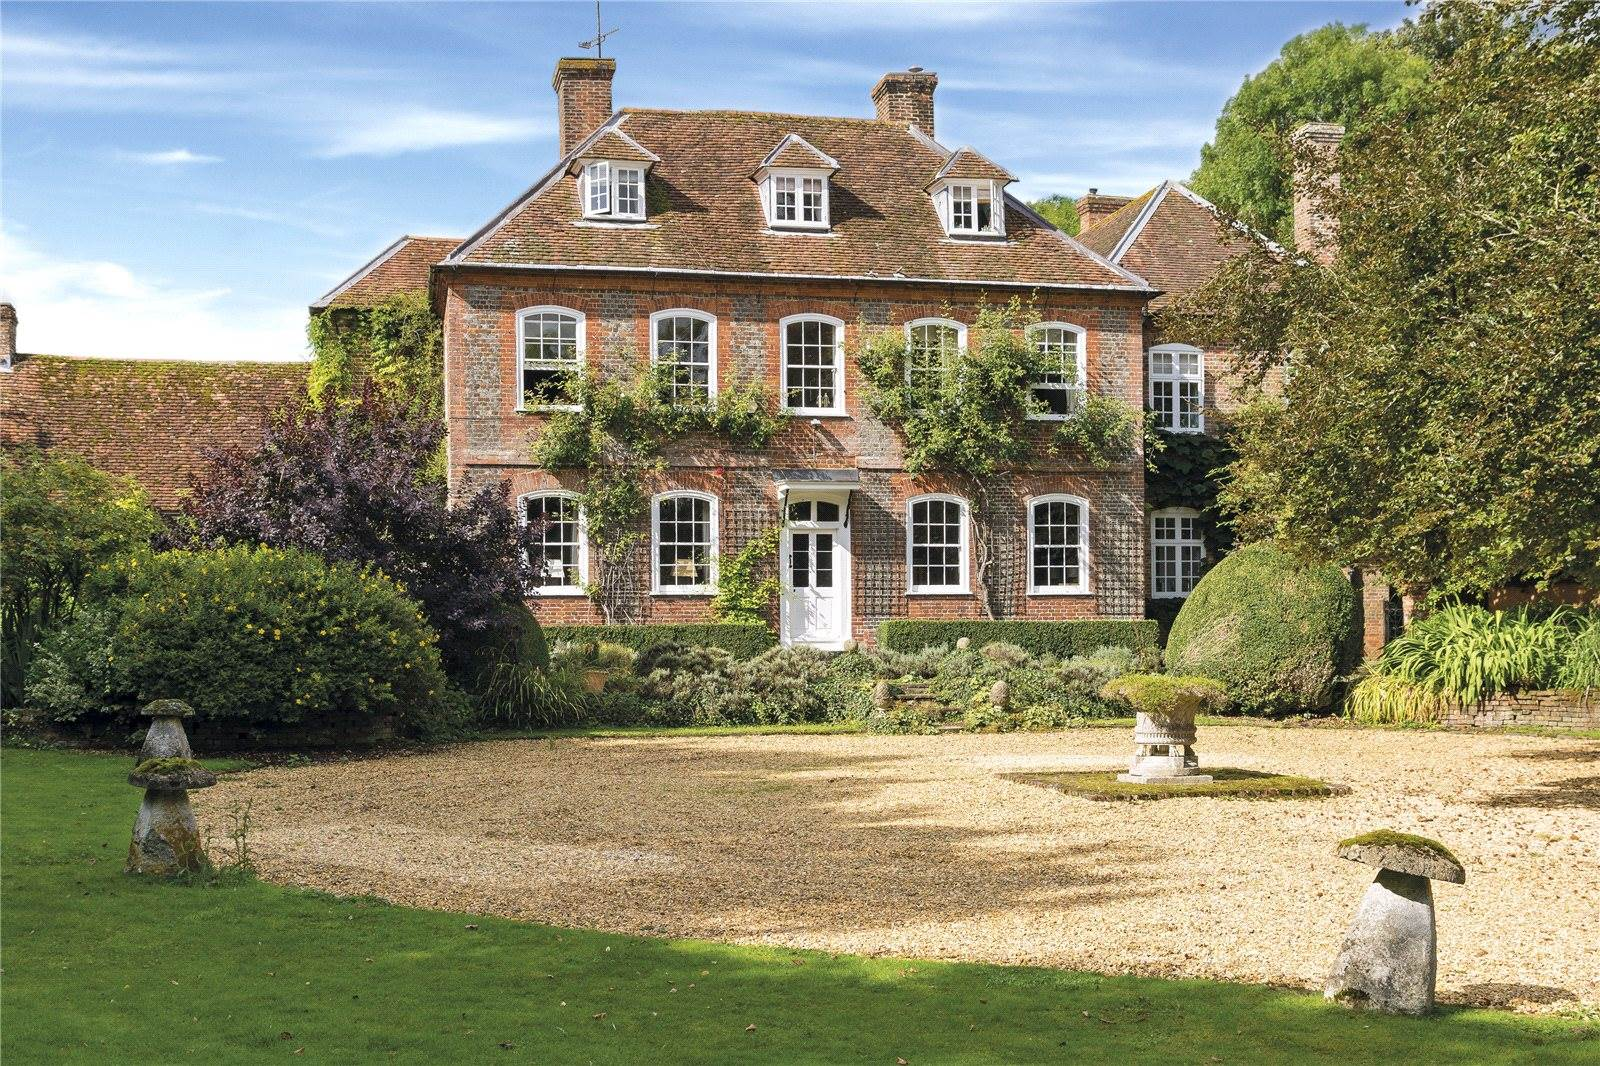 The Manor House is a Grade II listed Queen Anne baroque house on 23 acres of grounds in Salisbury, England. The house is built of red and blue brick in English bond with red brick quoins on the front elevation.